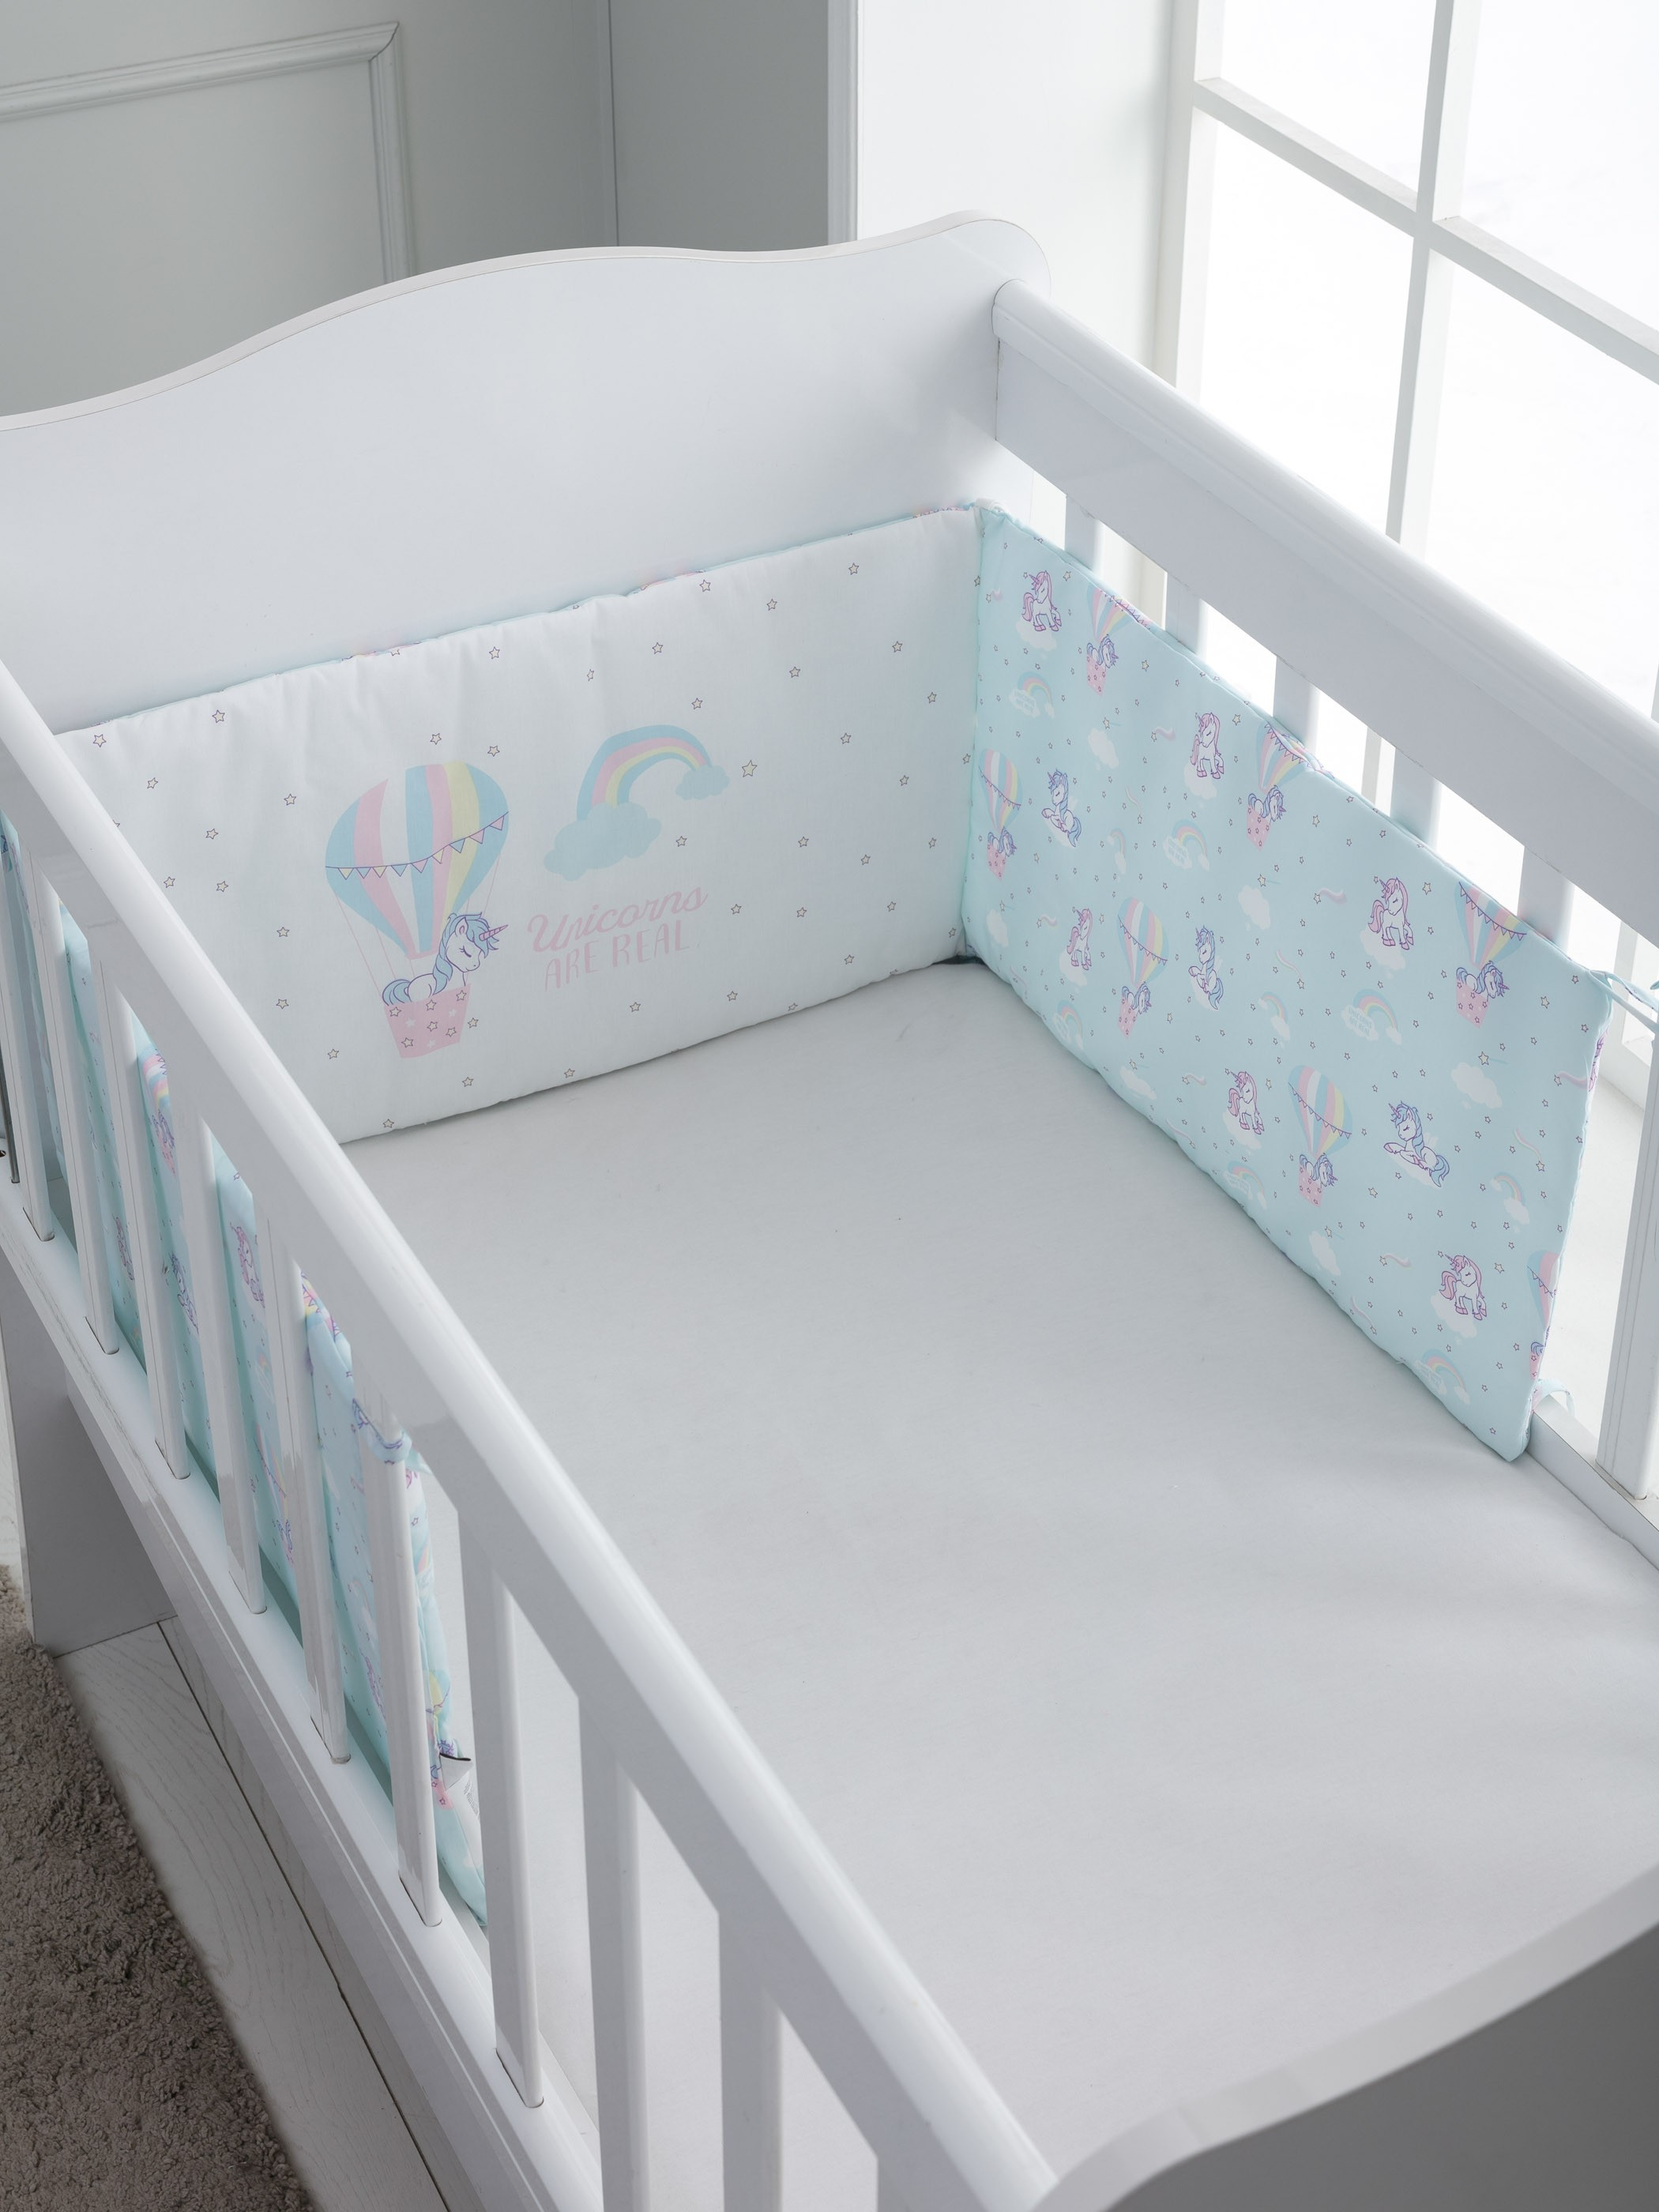 MIX - Printed Bedside Protector - 9WI199Z1